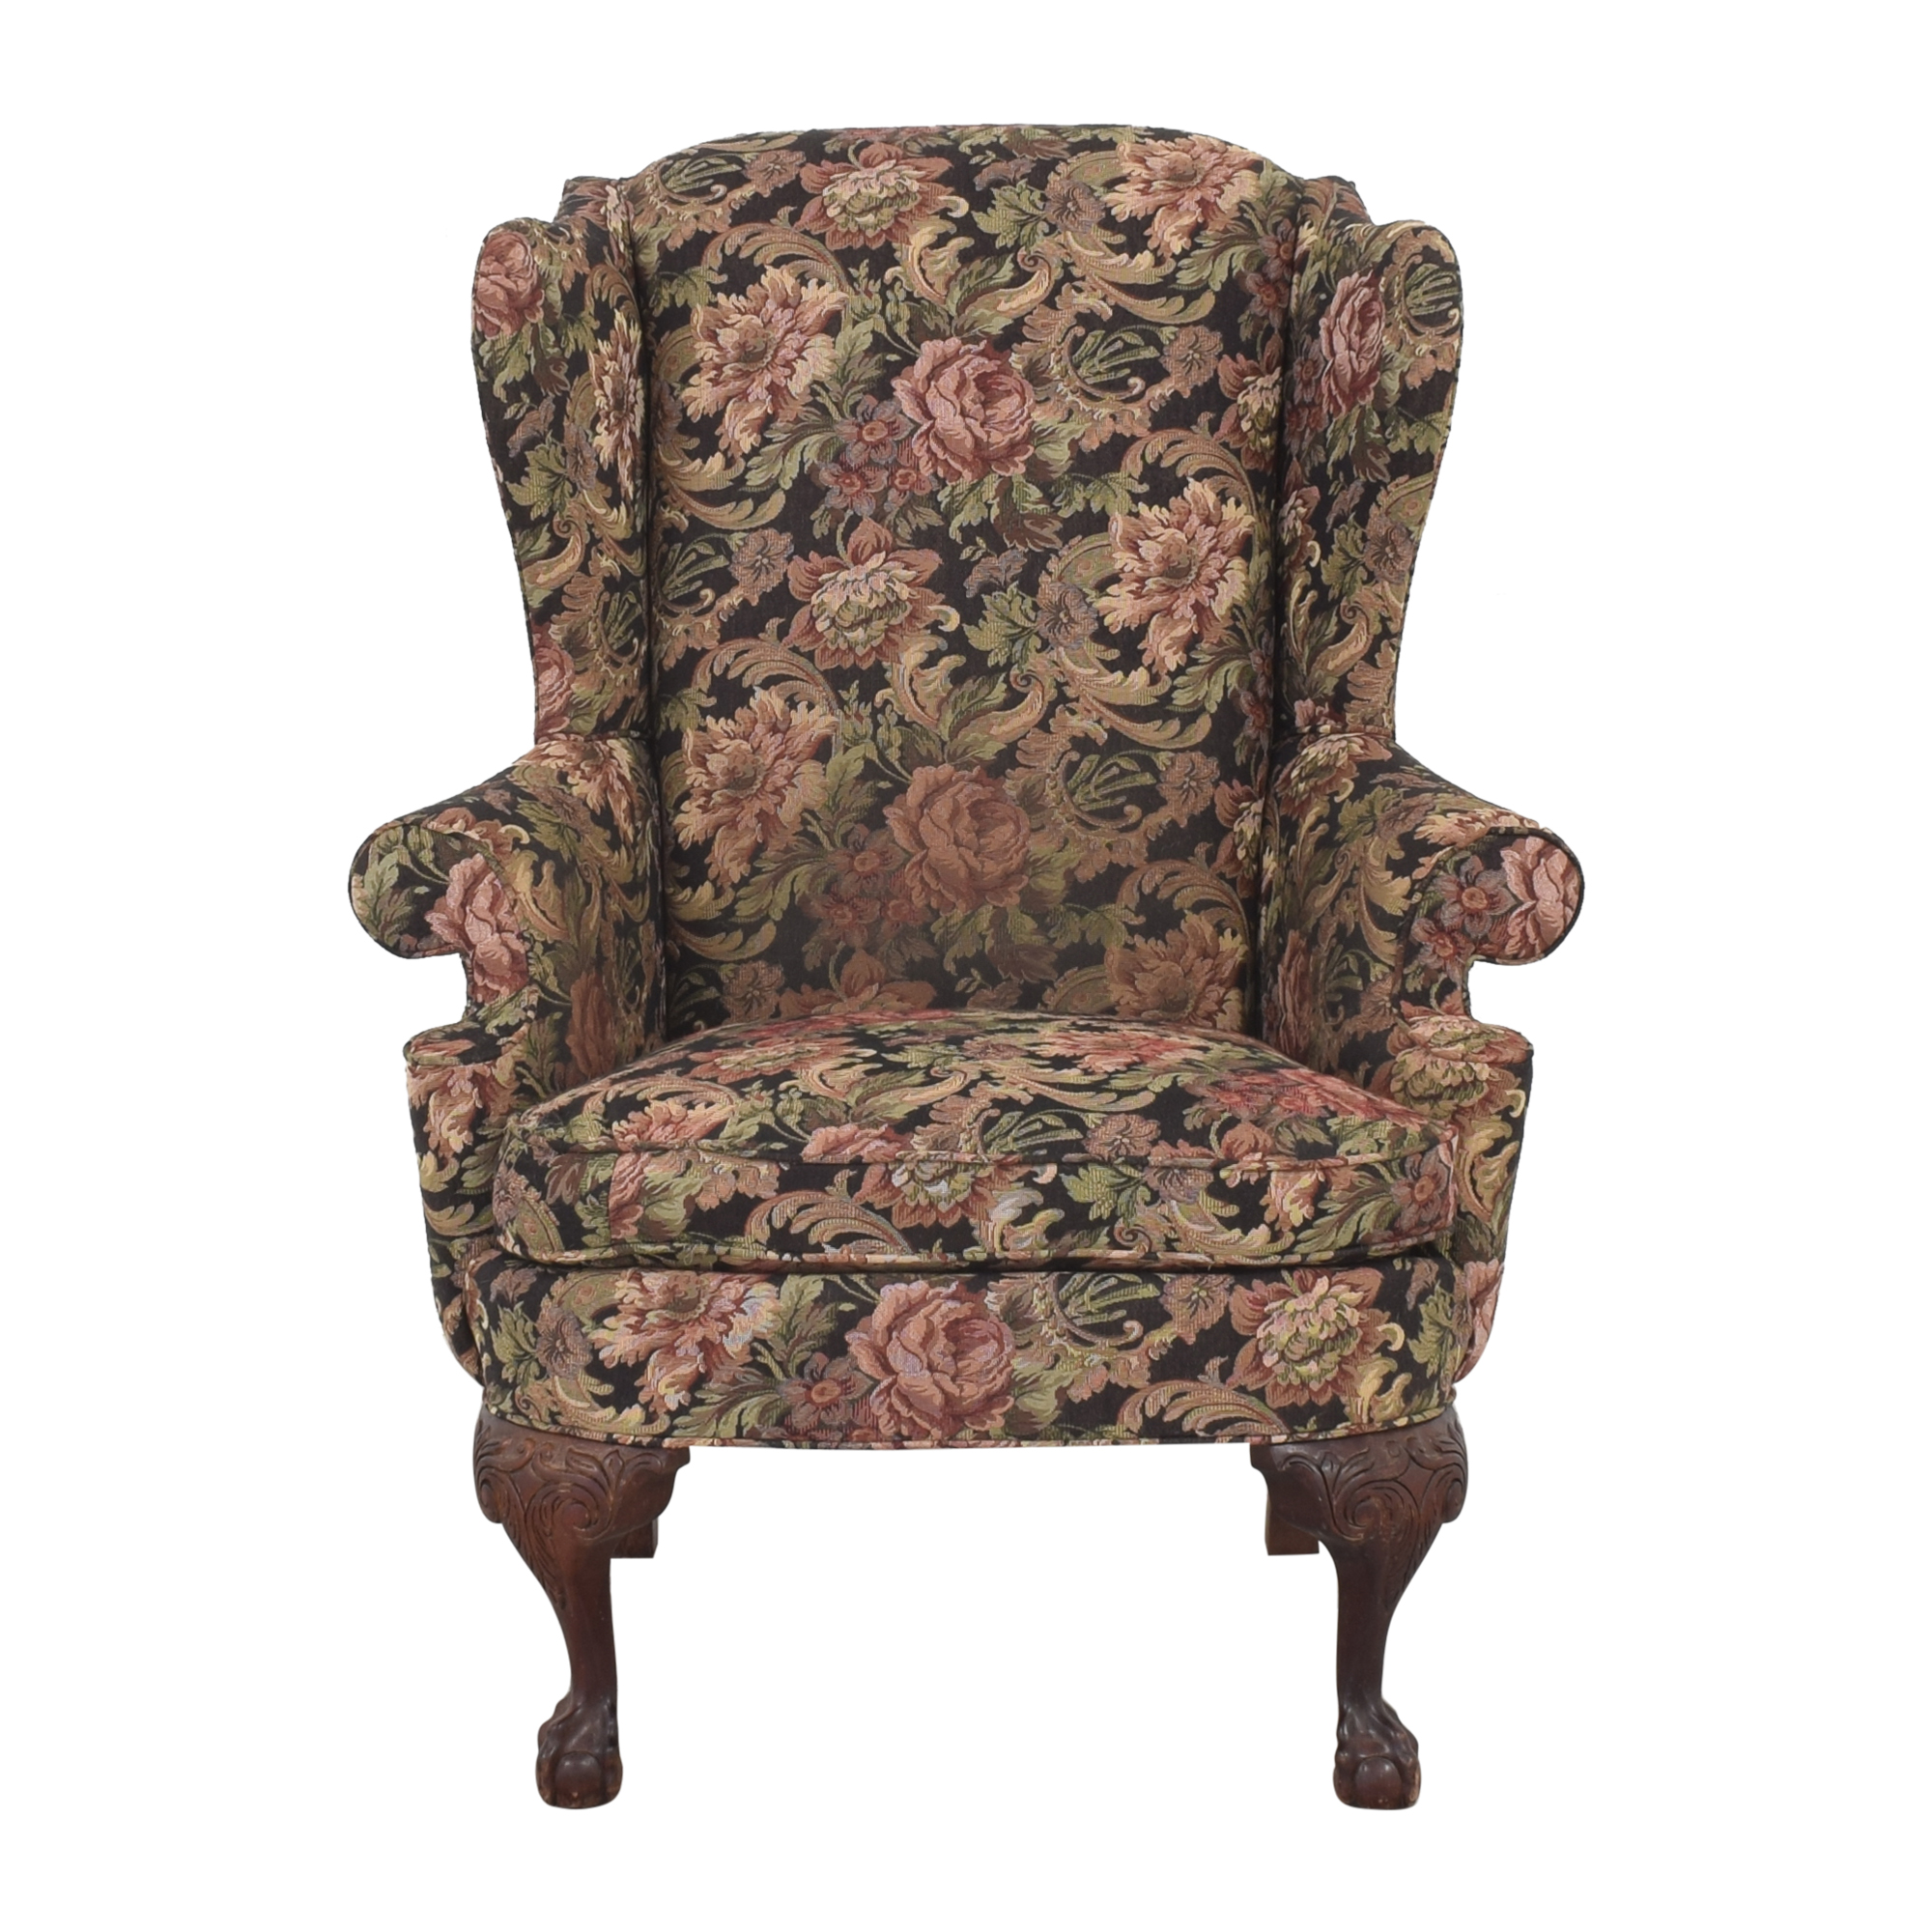 Thomasville Thomasville Queen Anne Wing Back Chair price